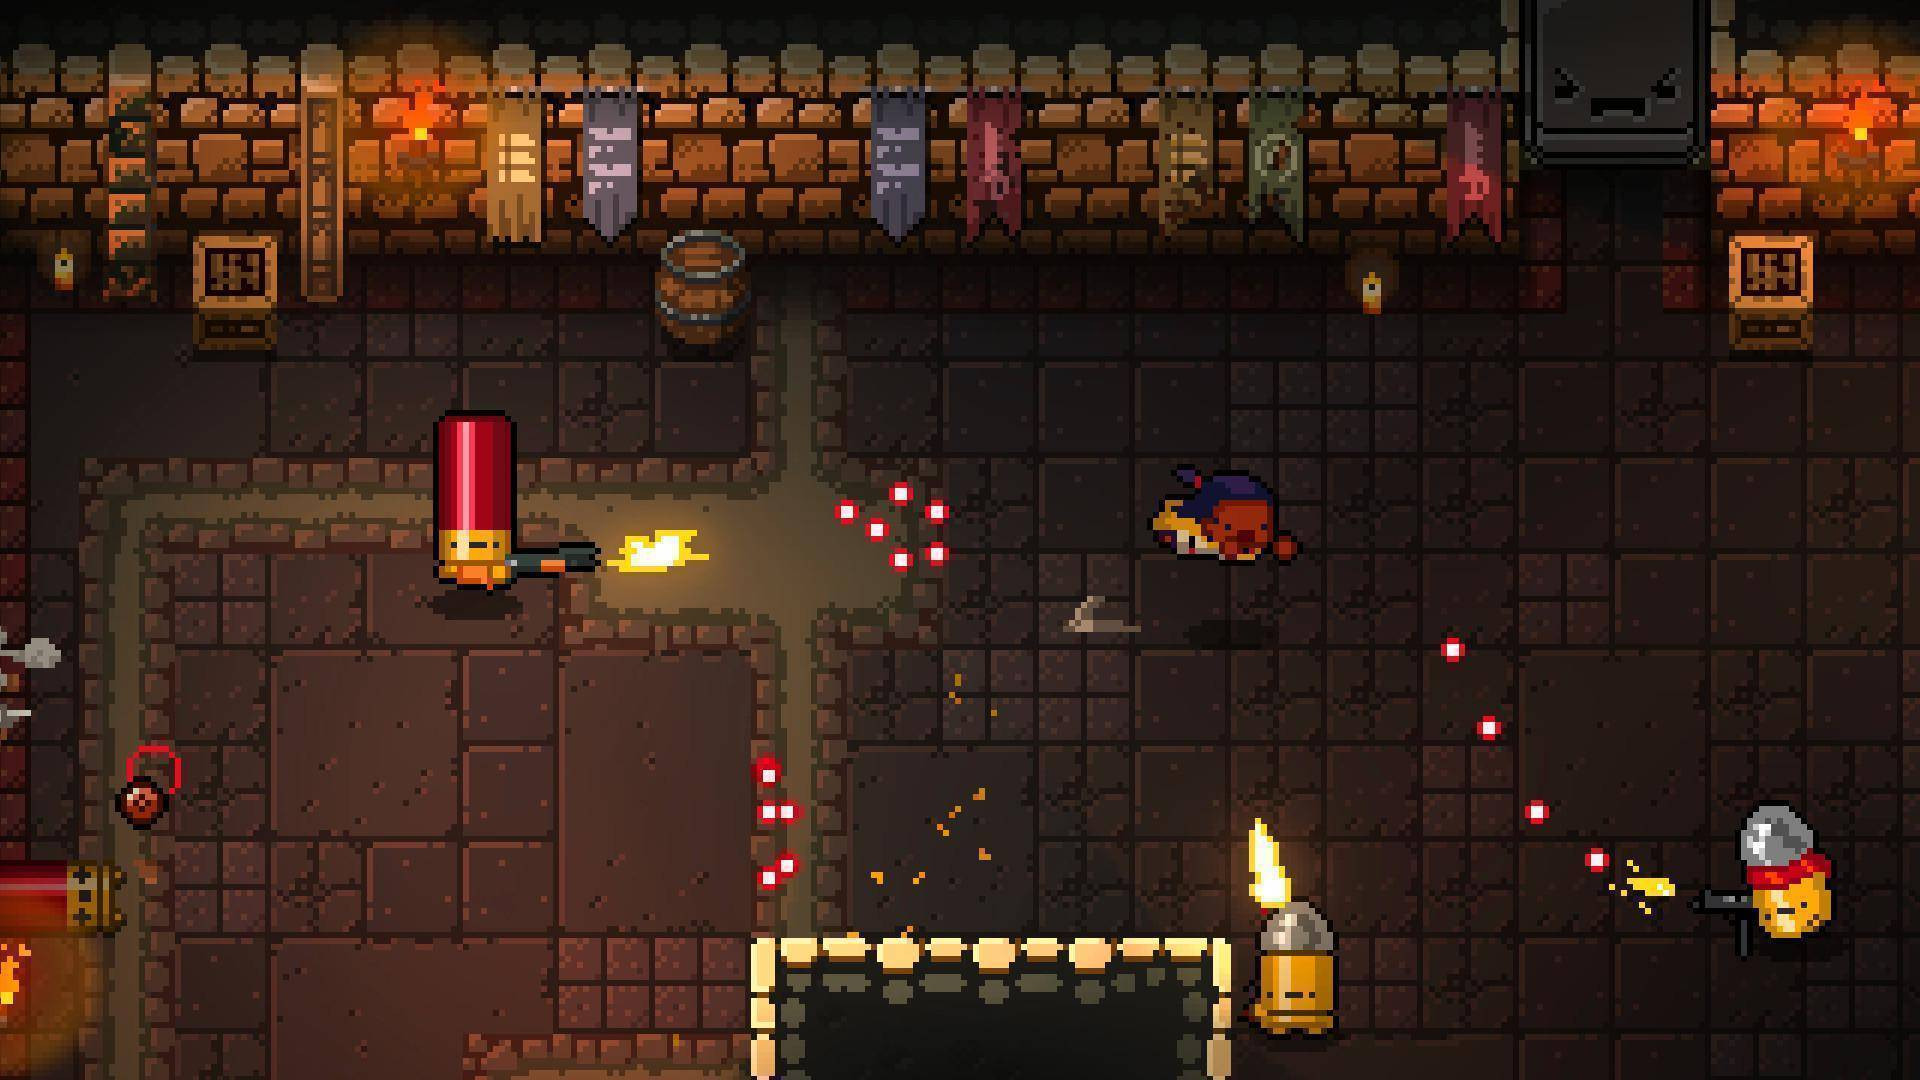 Titel des Artikels überEnter the Gungeon